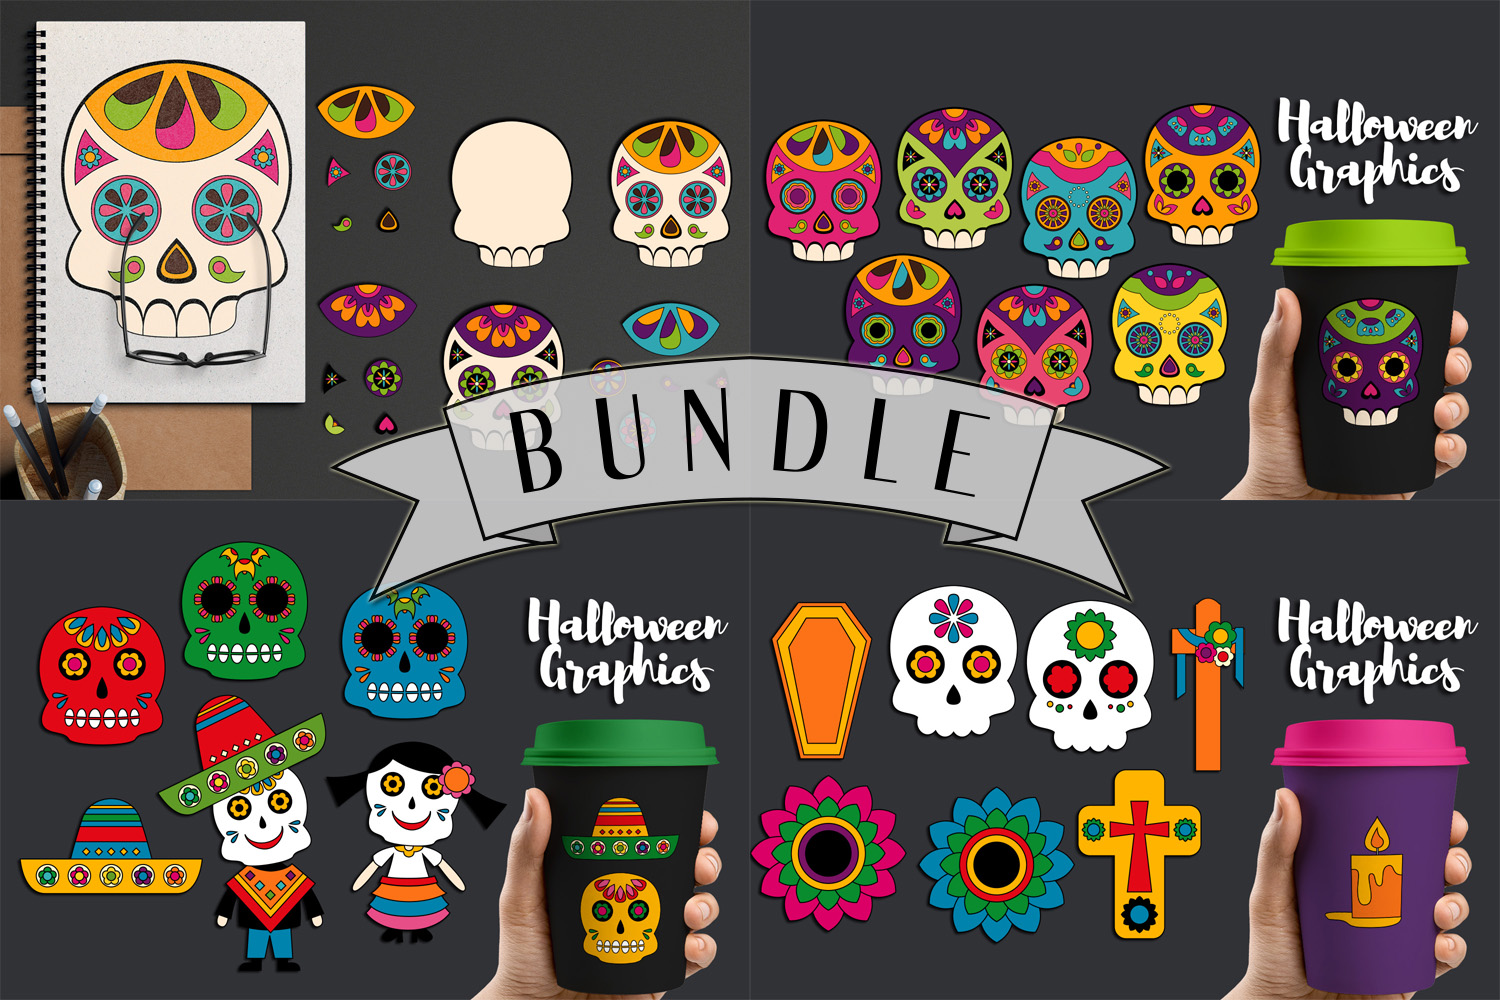 Download Free Day Of The Dead Bundle Graphic By Darrakadisha Creative Fabrica for Cricut Explore, Silhouette and other cutting machines.